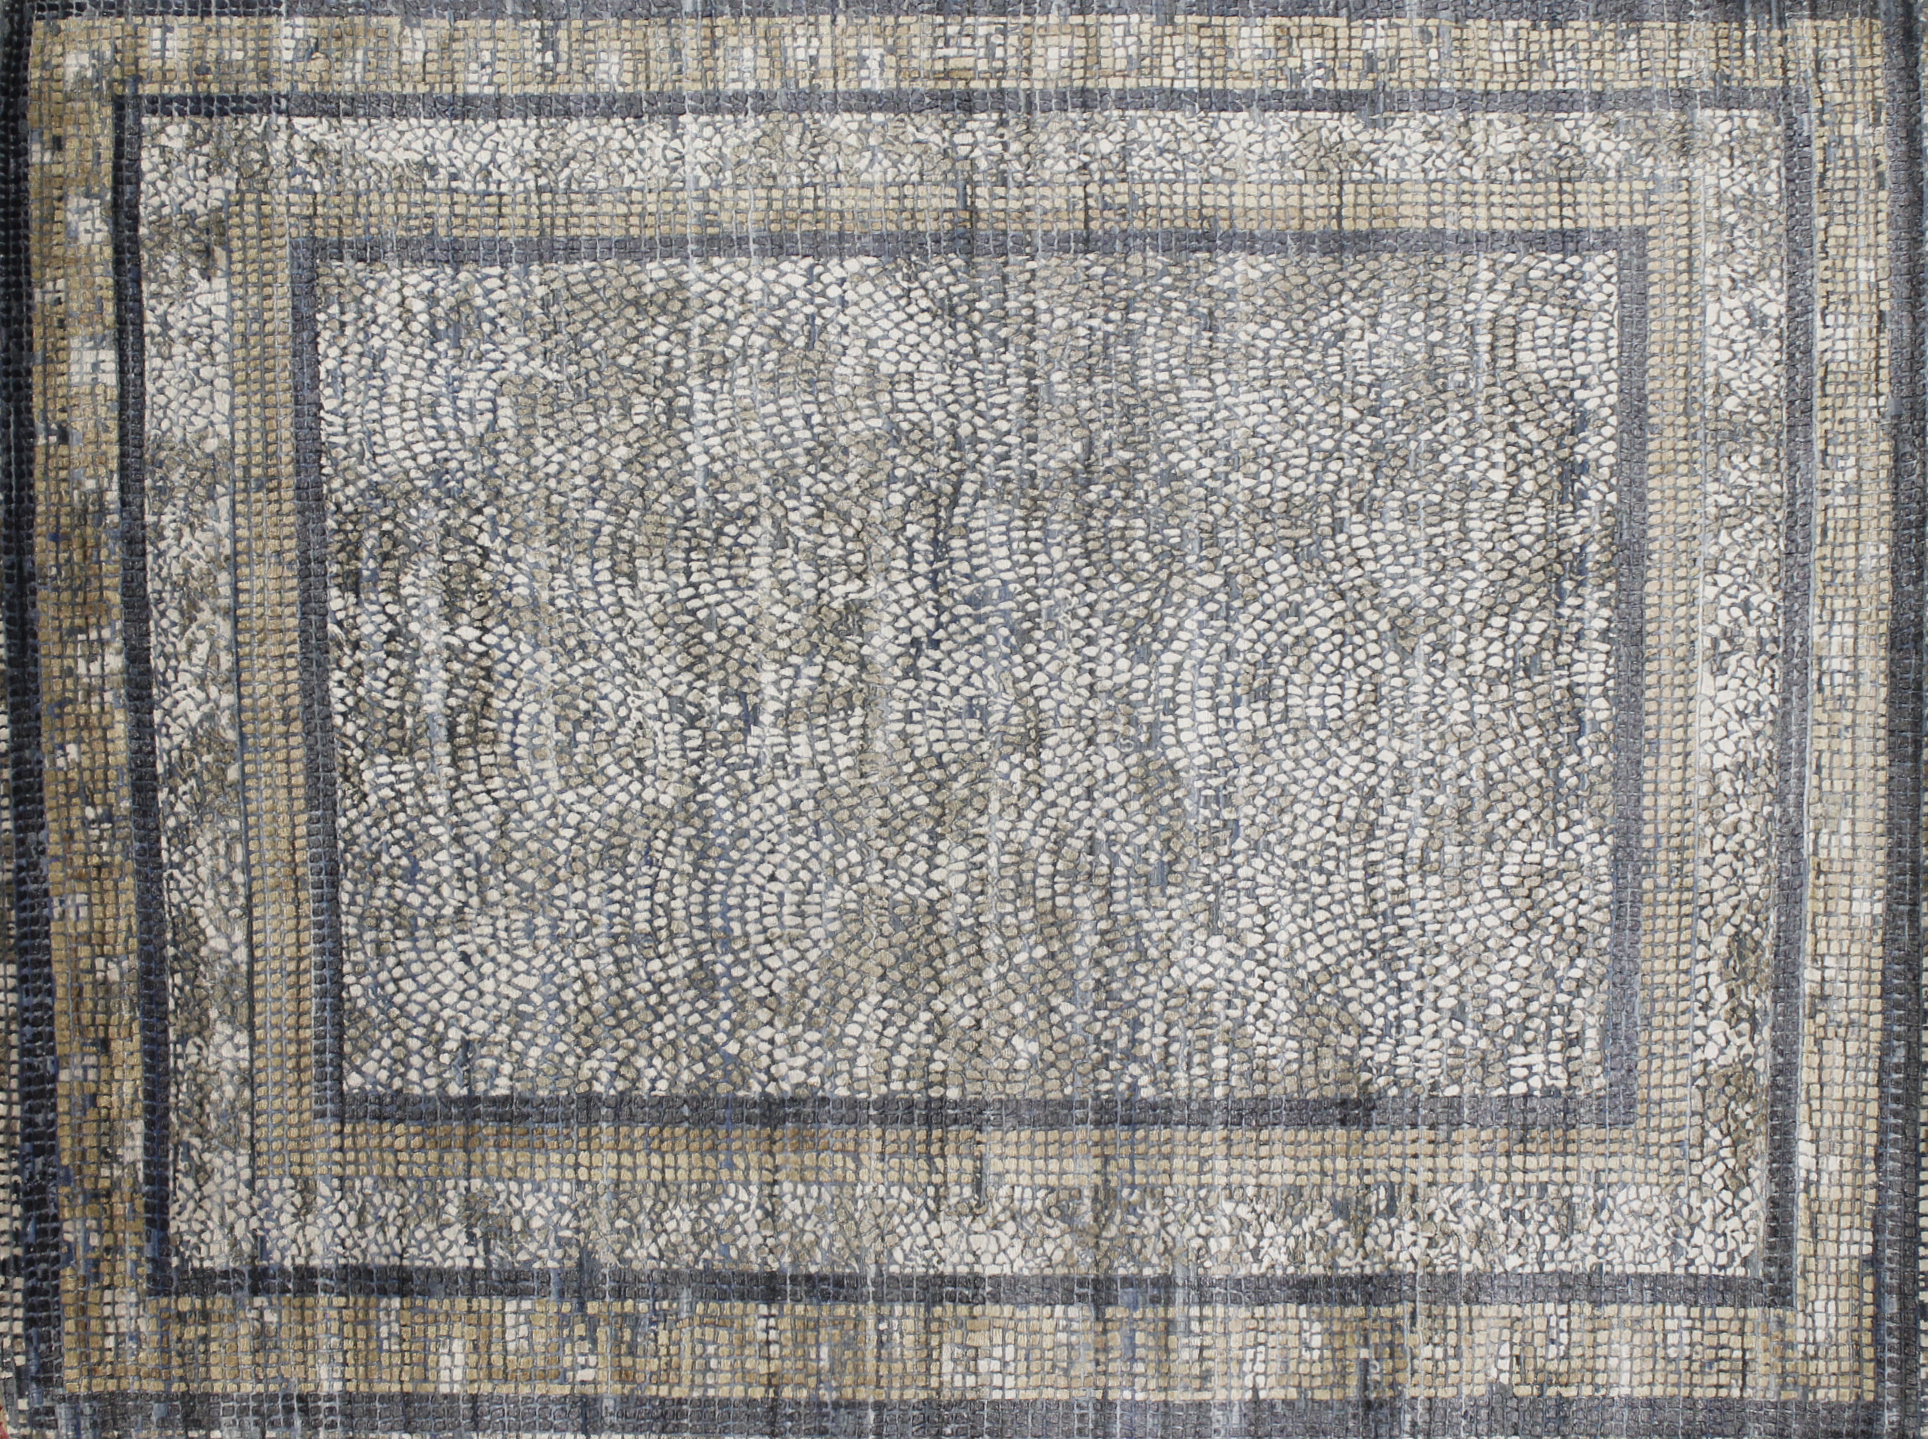 8x10 Transitional Hand Knotted Wool & Viscose Area Rug - MR022662